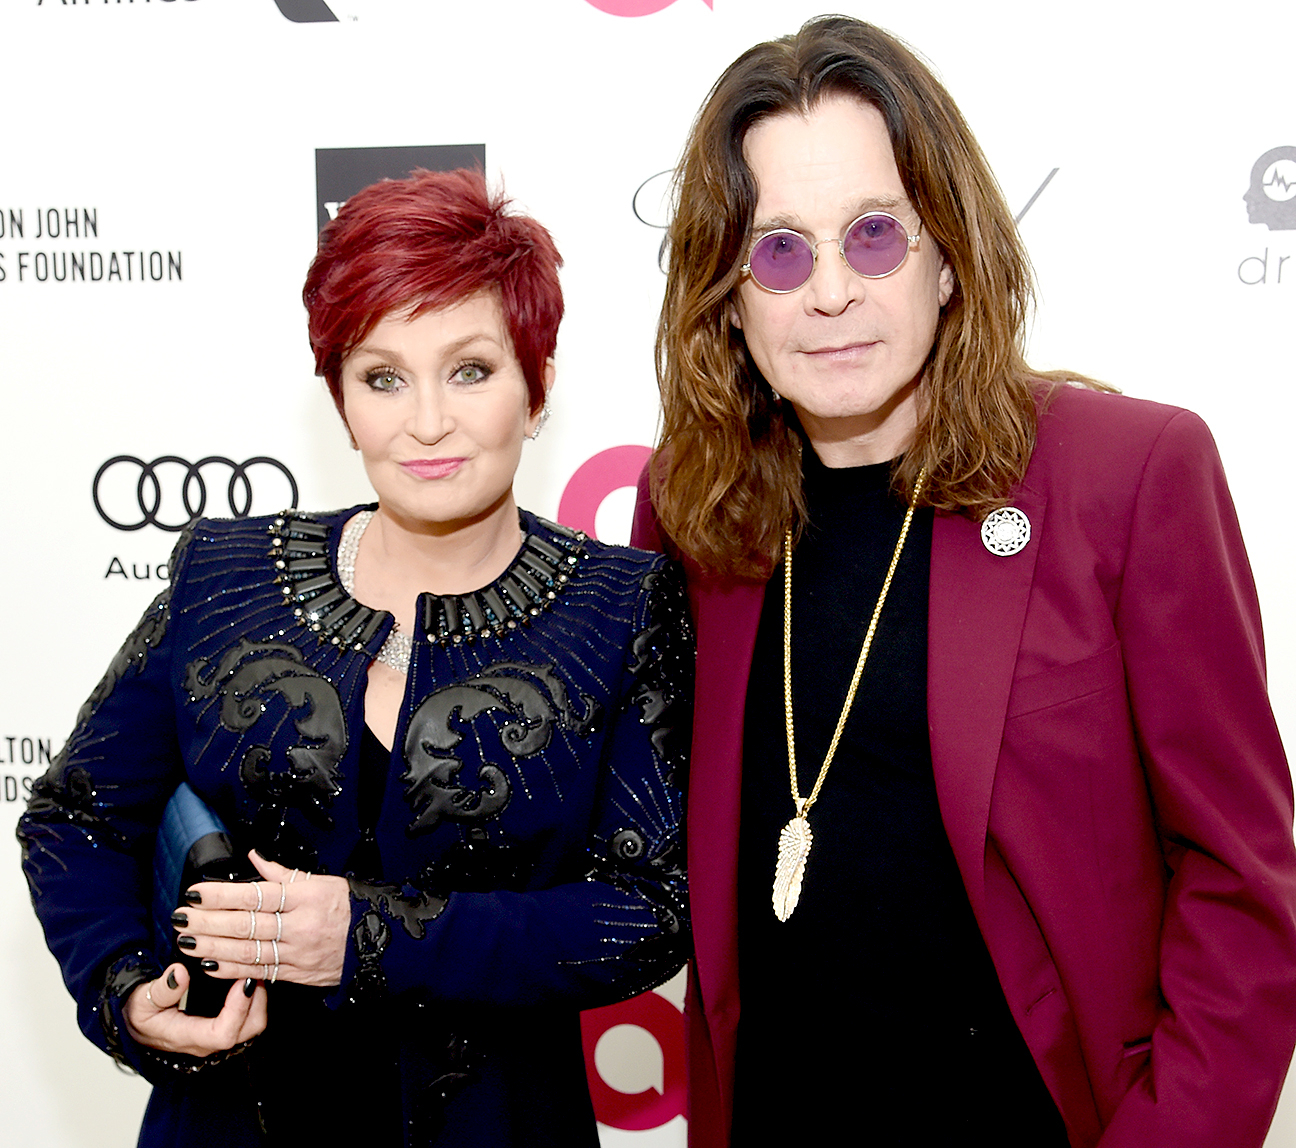 Sharon Osbourne and Ozzy Osbourne attend the 23rd Annual Elton John AIDS Foundation Academy Awards Viewing Party on Feb. 22, 2015.